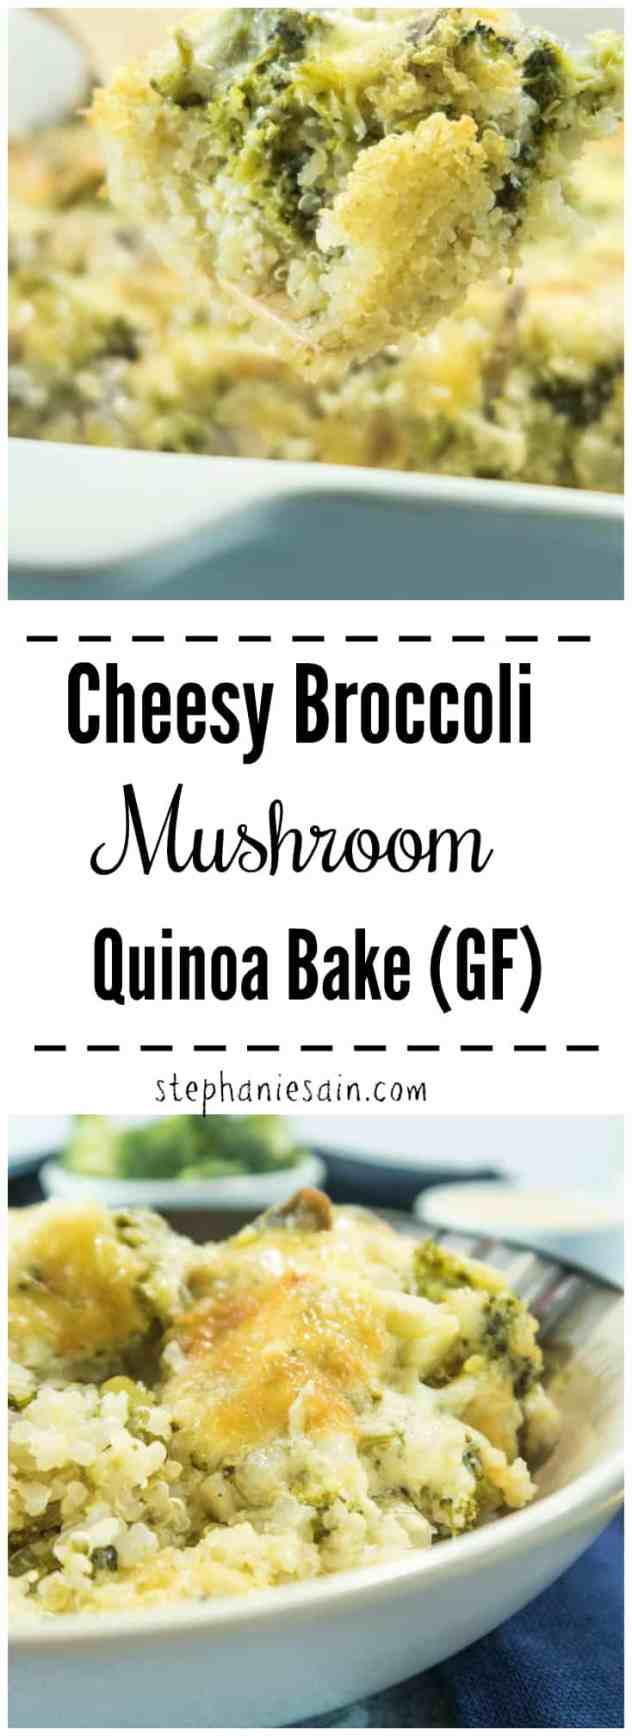 This Cheesy Broccoli Mushroom Quinoa Bake is chocked full of broccoli, mushrooms, cheese & quinoa. For a classic bowl of yummy comfort food with a health-ish twist. Gluten Free & Vegetarian.